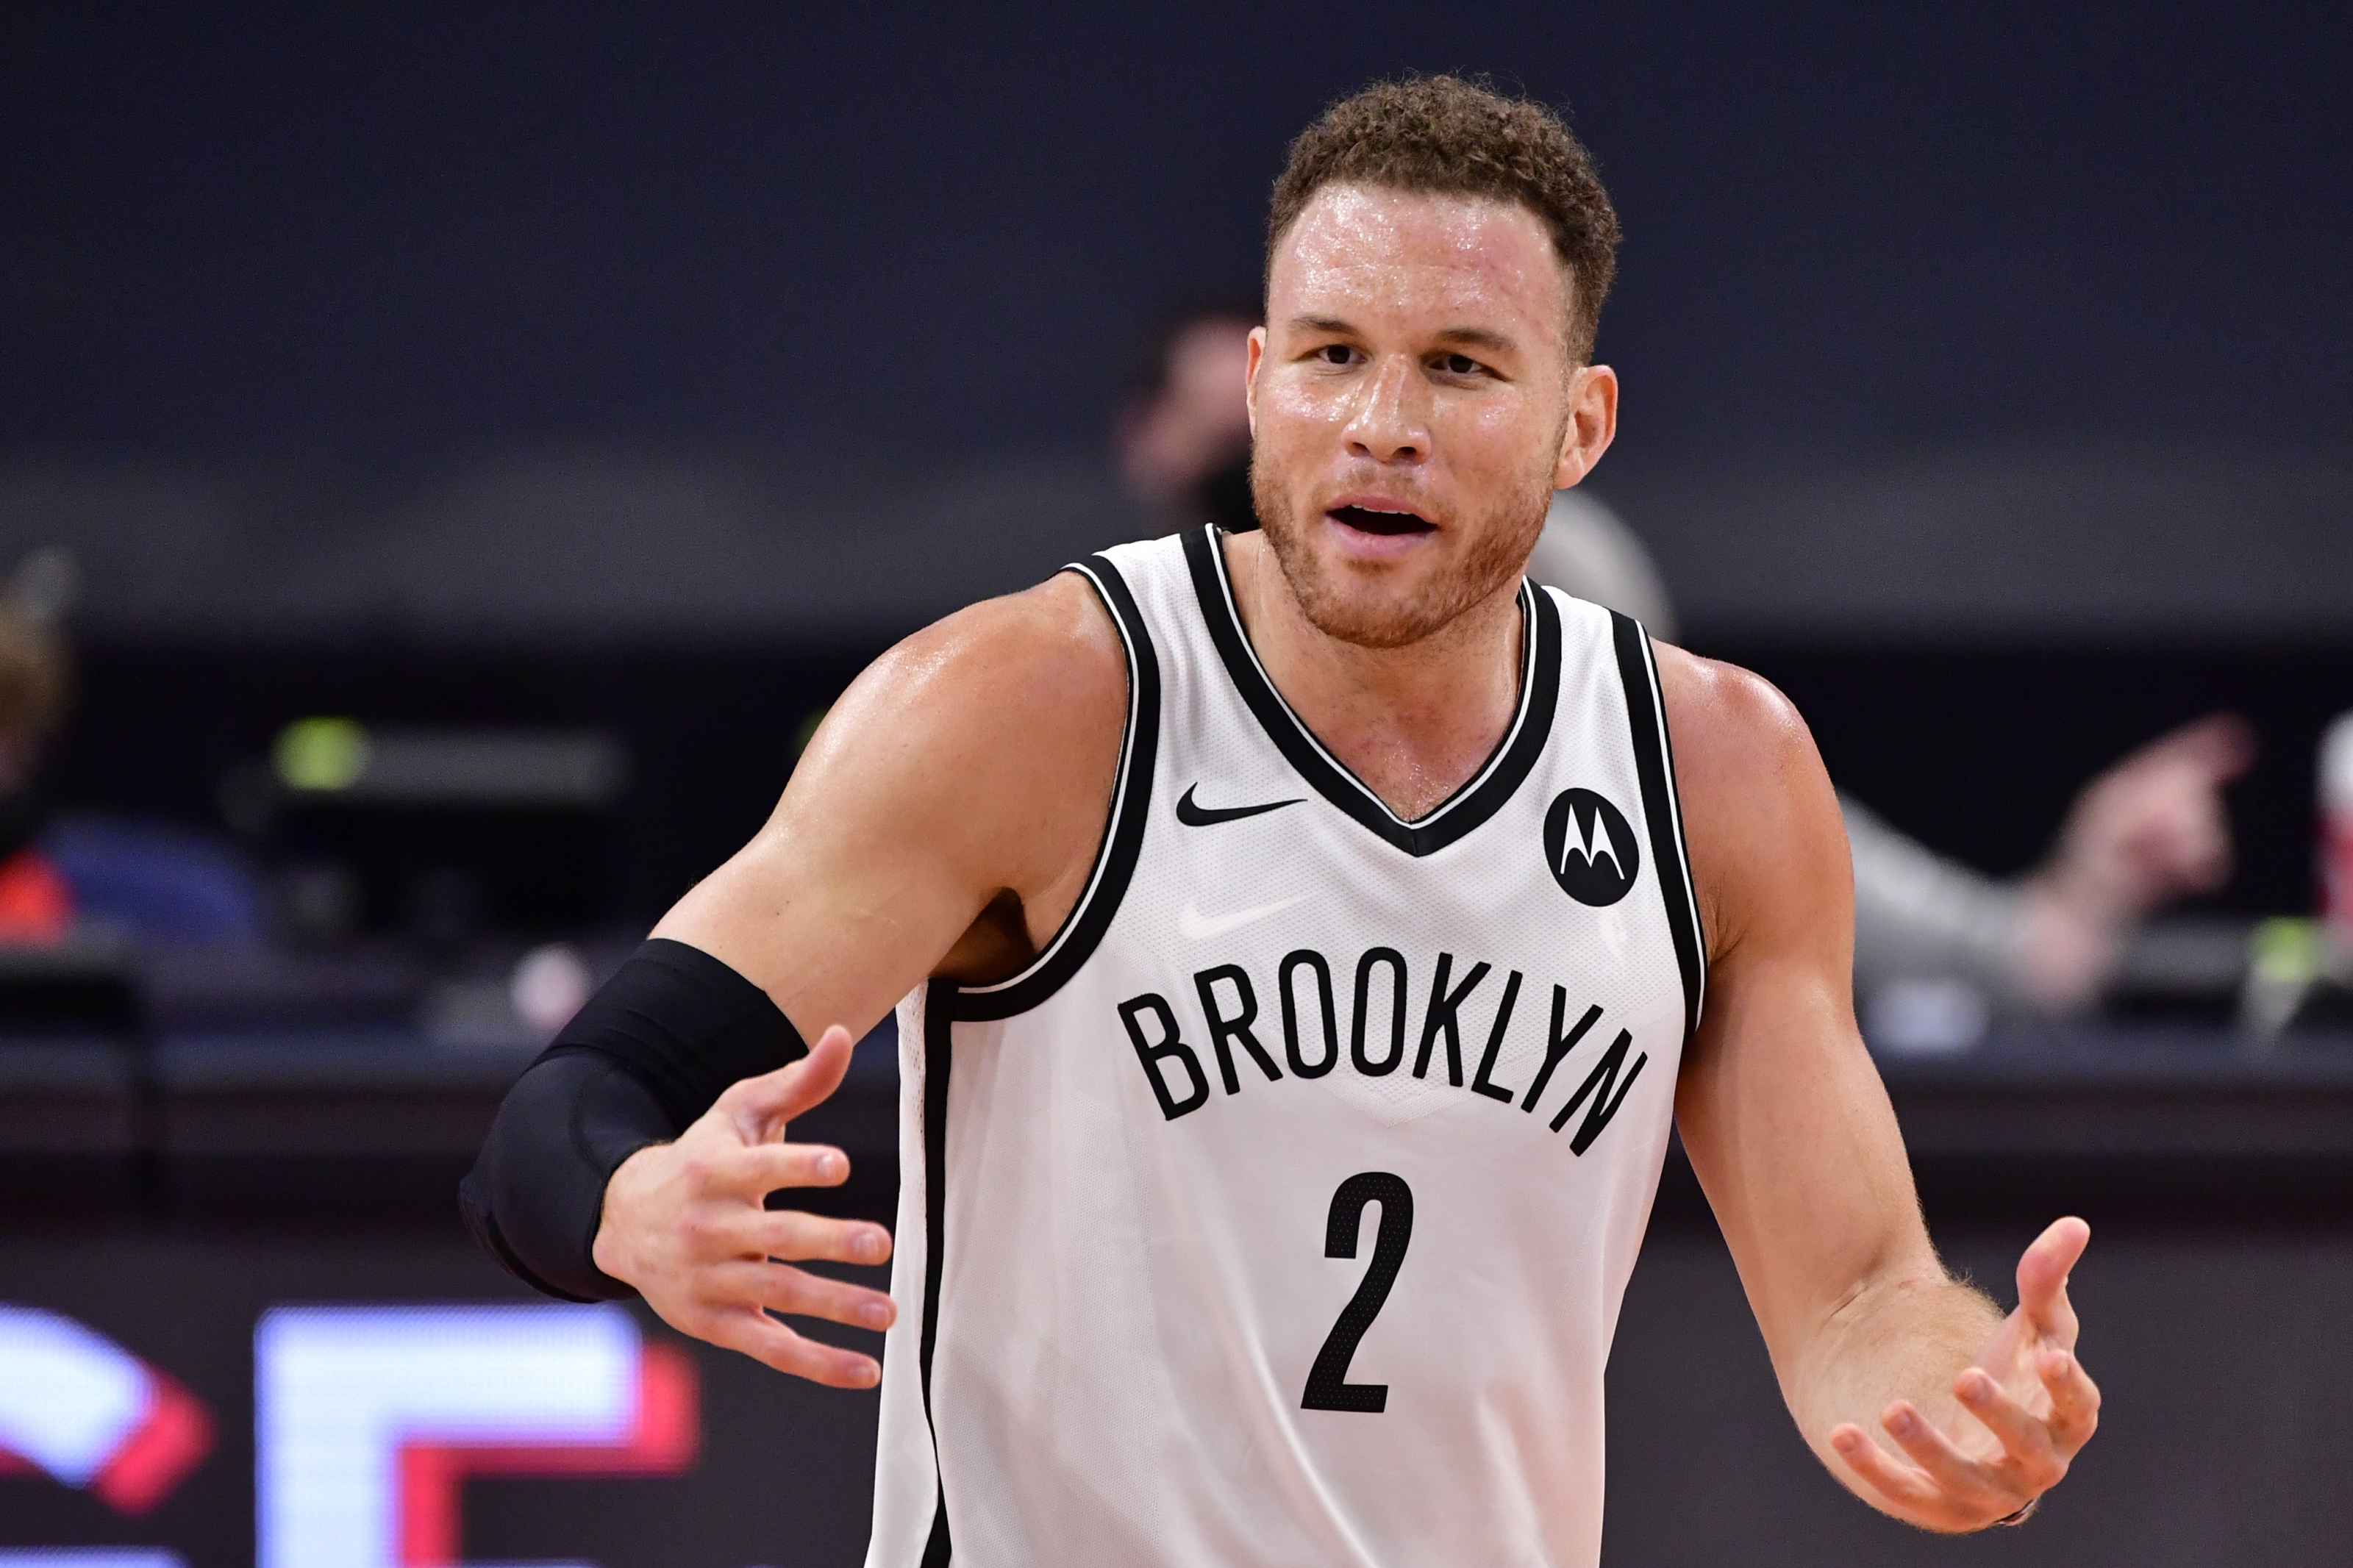 Brooklyn Nets: Blake Griffin is looking like the star from the Clippers in  BK